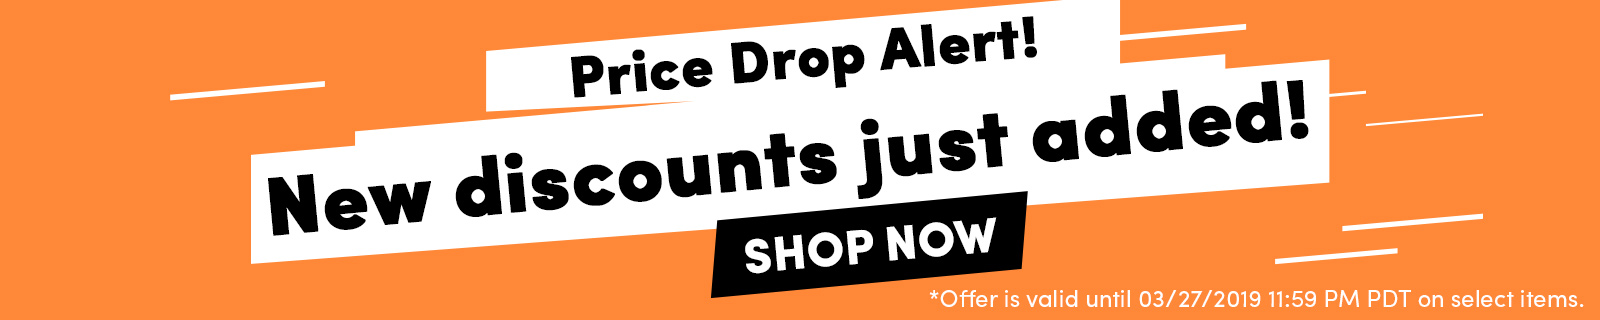 Price Drop Alert! New discounts just added! SHOP NOW